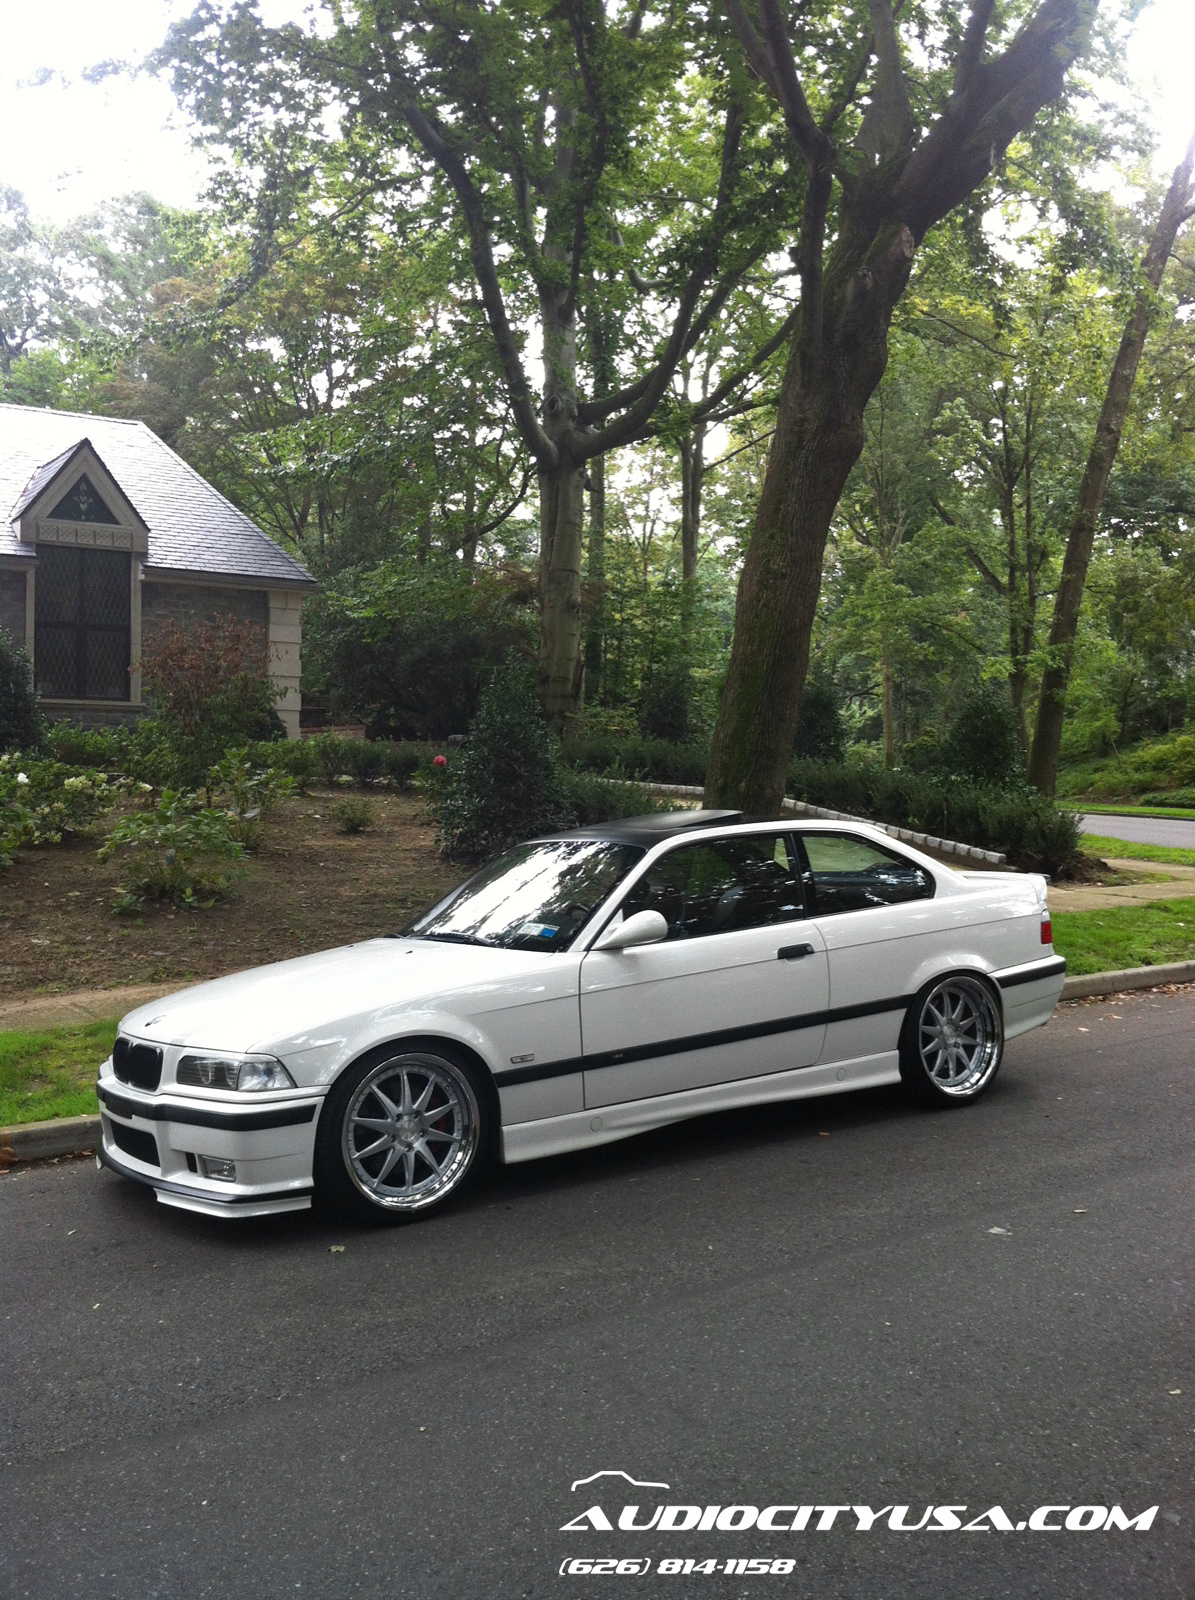 1997 e36 bmw m3 on 19 rennen csl 1 brush face chrome lip. Black Bedroom Furniture Sets. Home Design Ideas